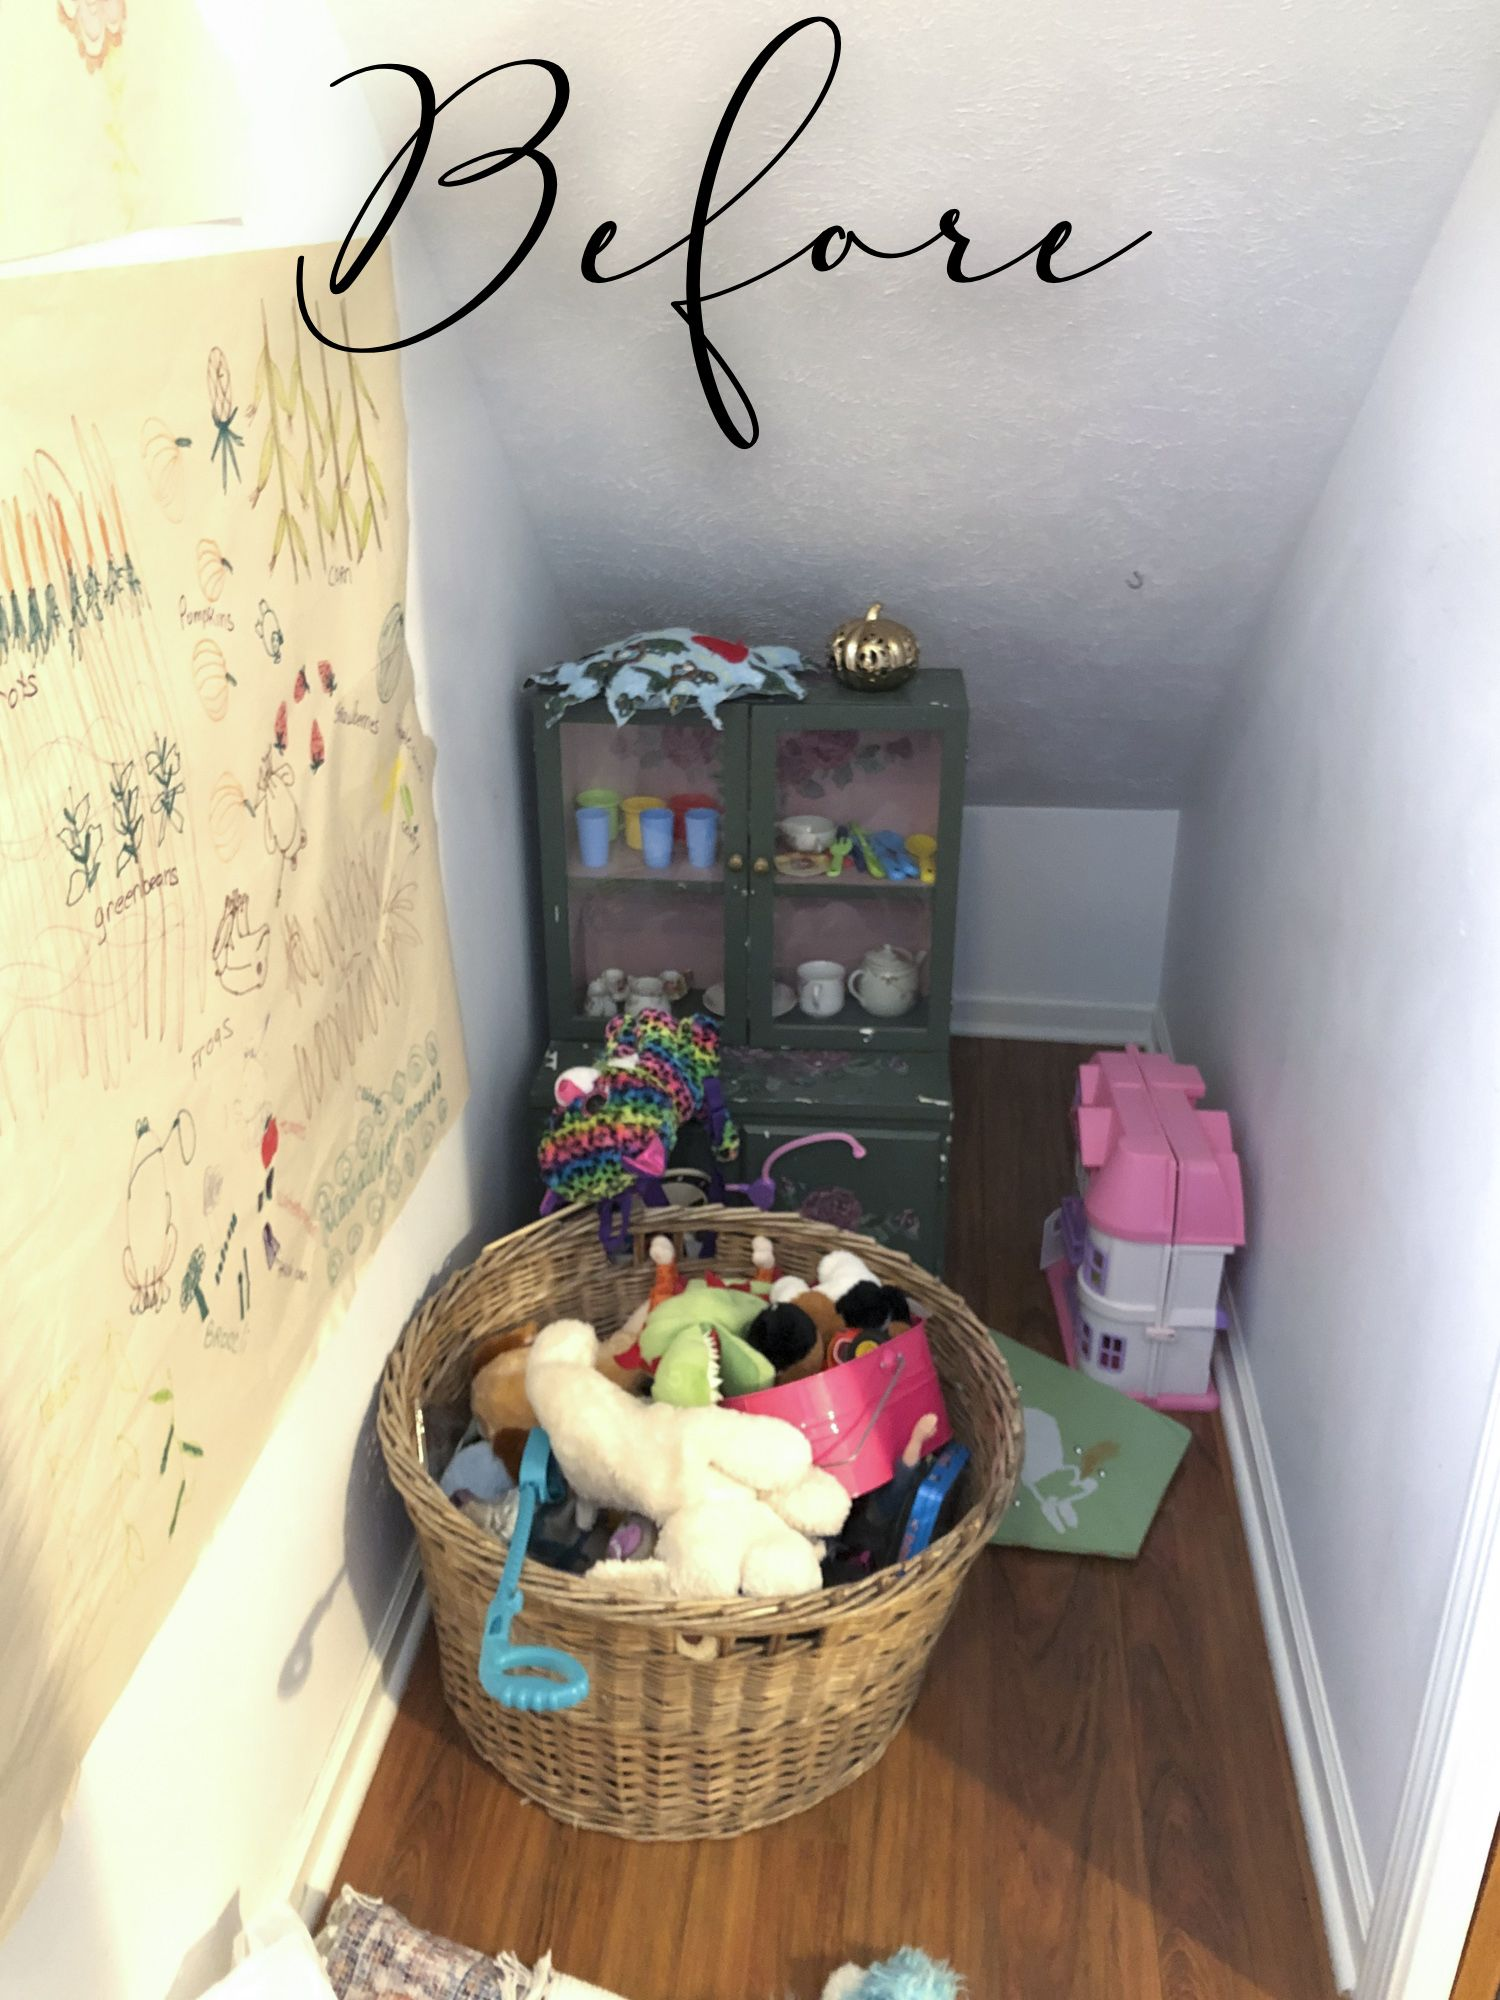 Pin By Sarah Grace In My Space Ho On A Space For Play 0210 In 2020 Kids Blanket Storage Toy Room Storage Simple Playroom